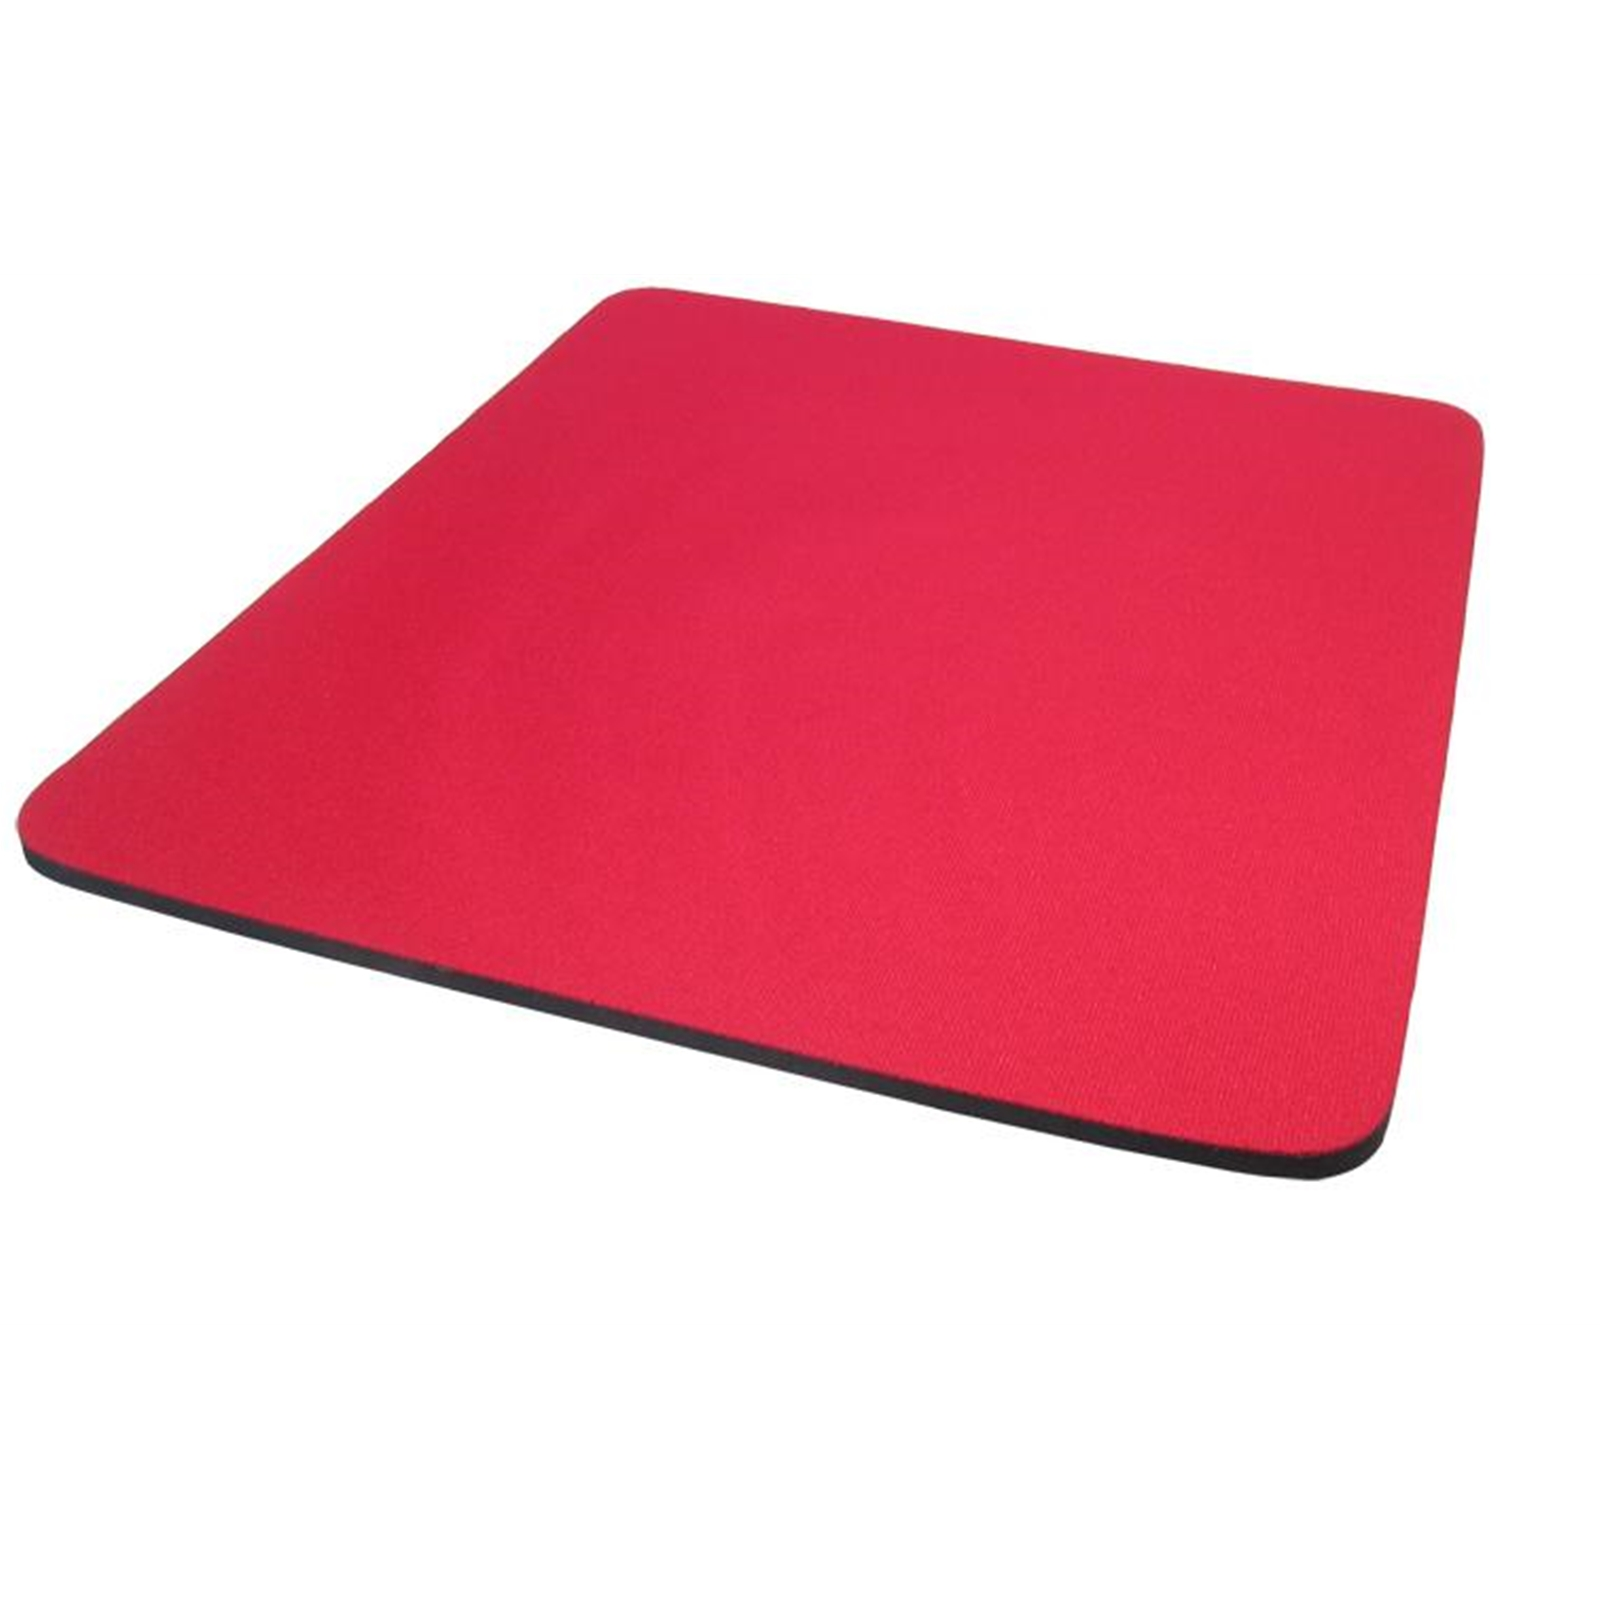 Target Non Slip Red Mouse Pad